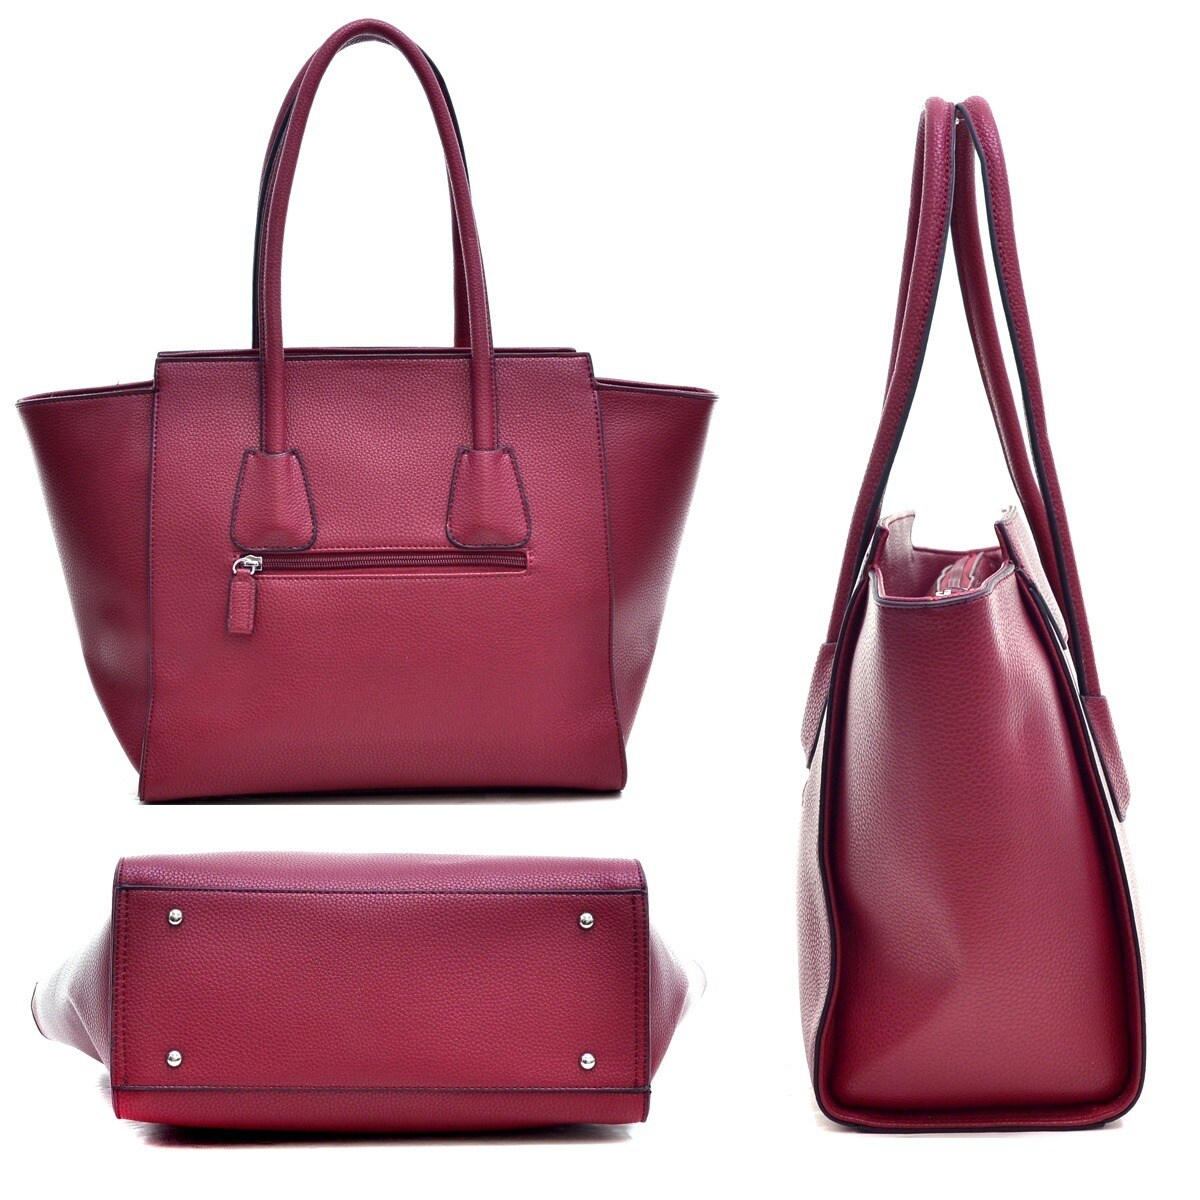 a7dab1e56b Shop Dasein Faux Leather Winged Satchel Women Shoulder Bag - On Sale - Free  Shipping Today - Overstock - 11018012